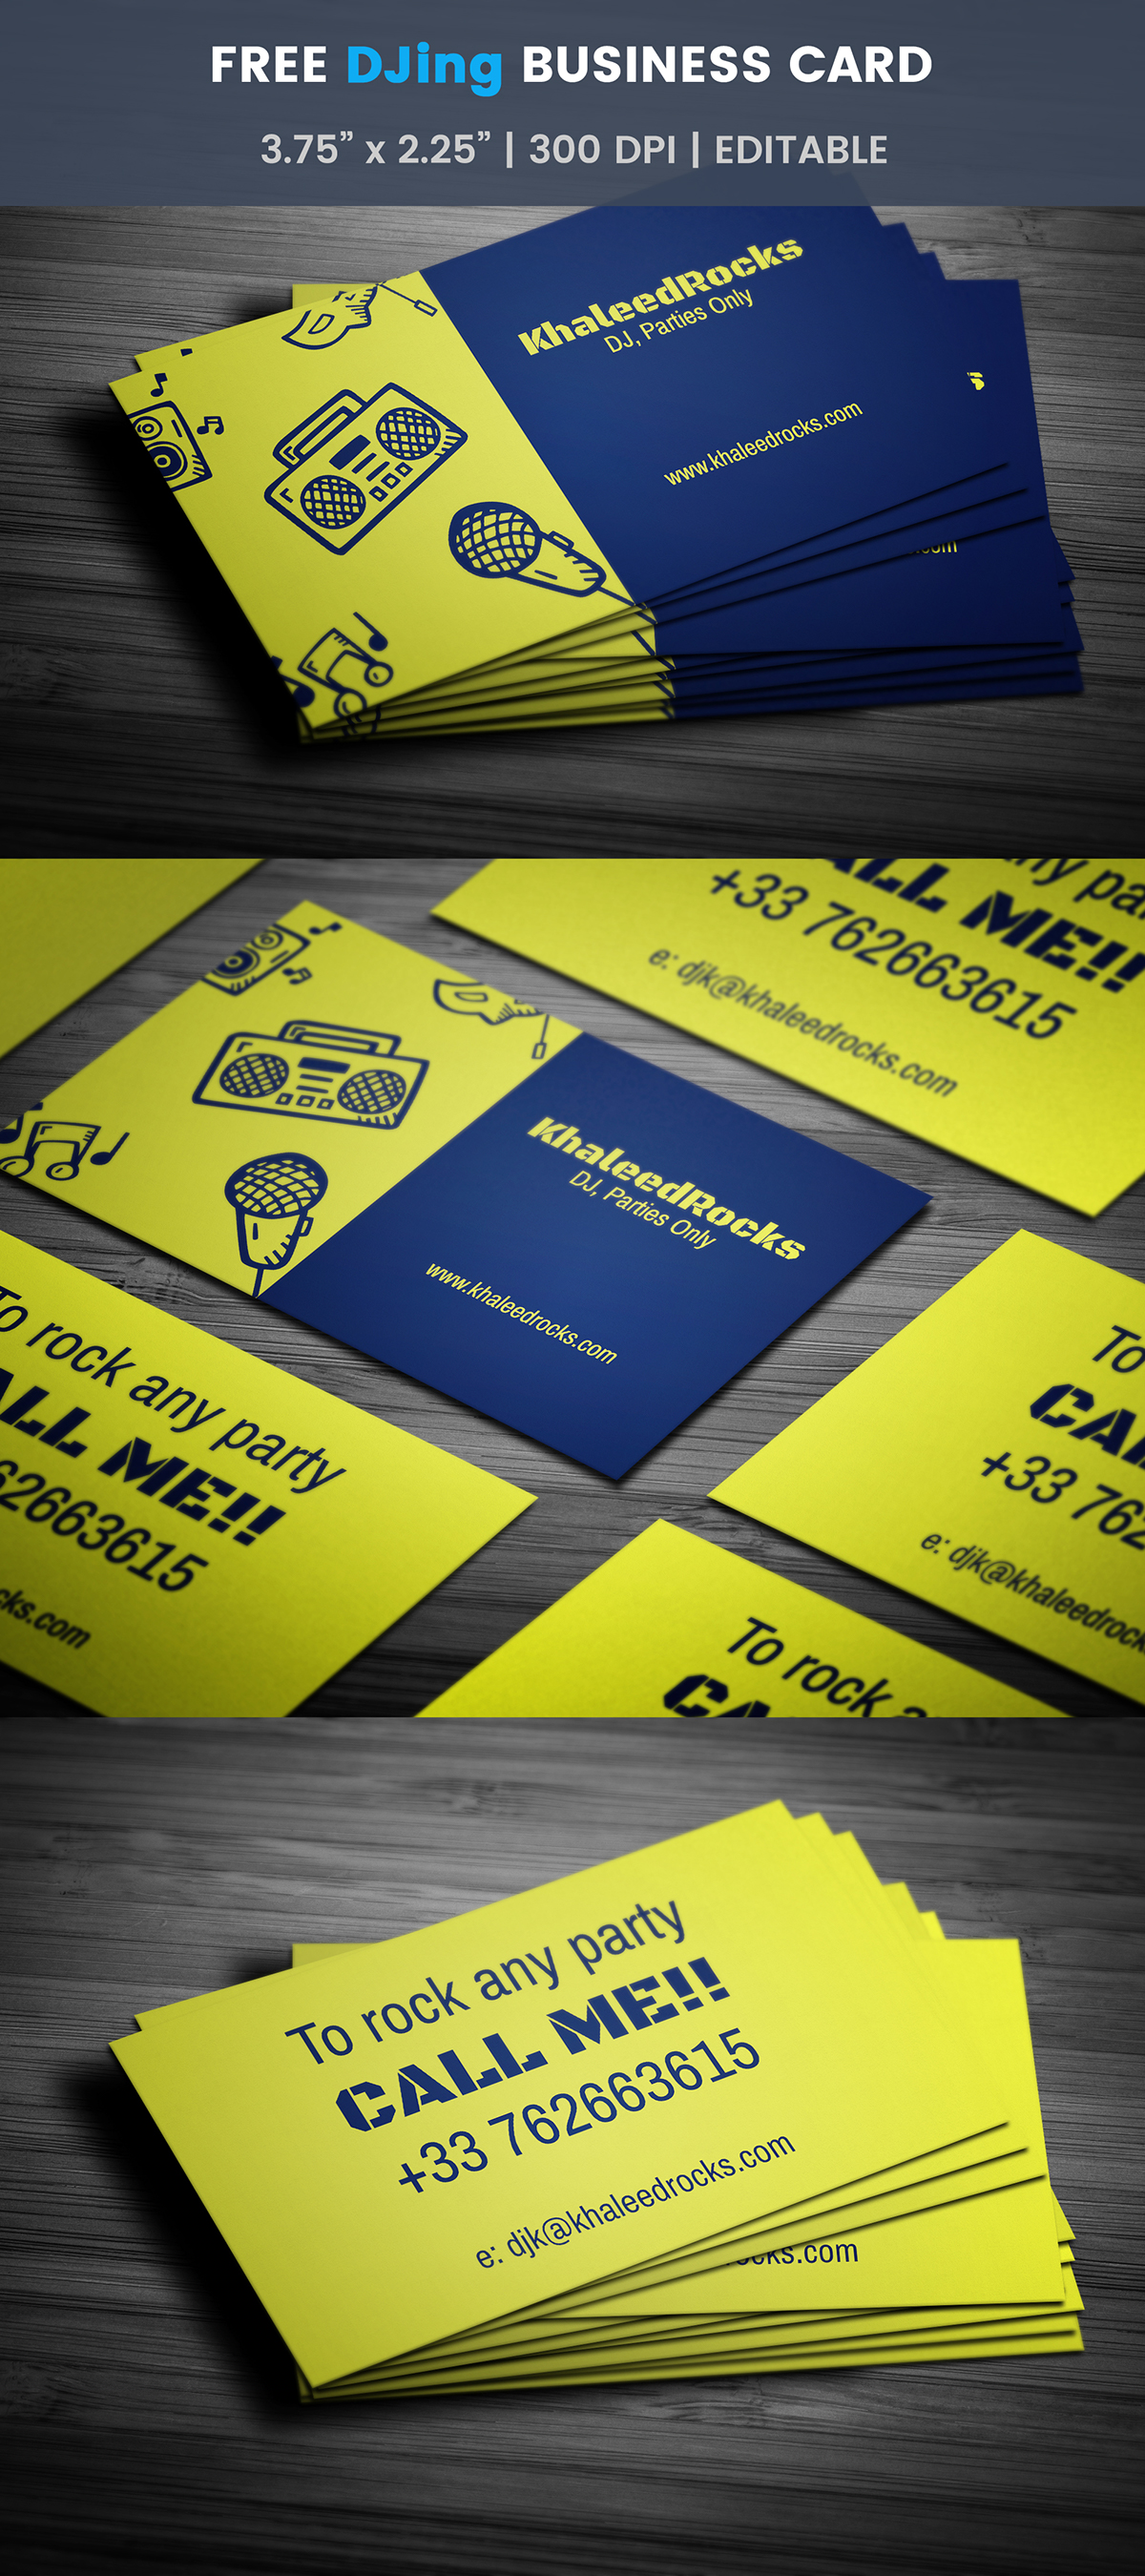 Free dj business card template on student show free dj business card template flashek Images